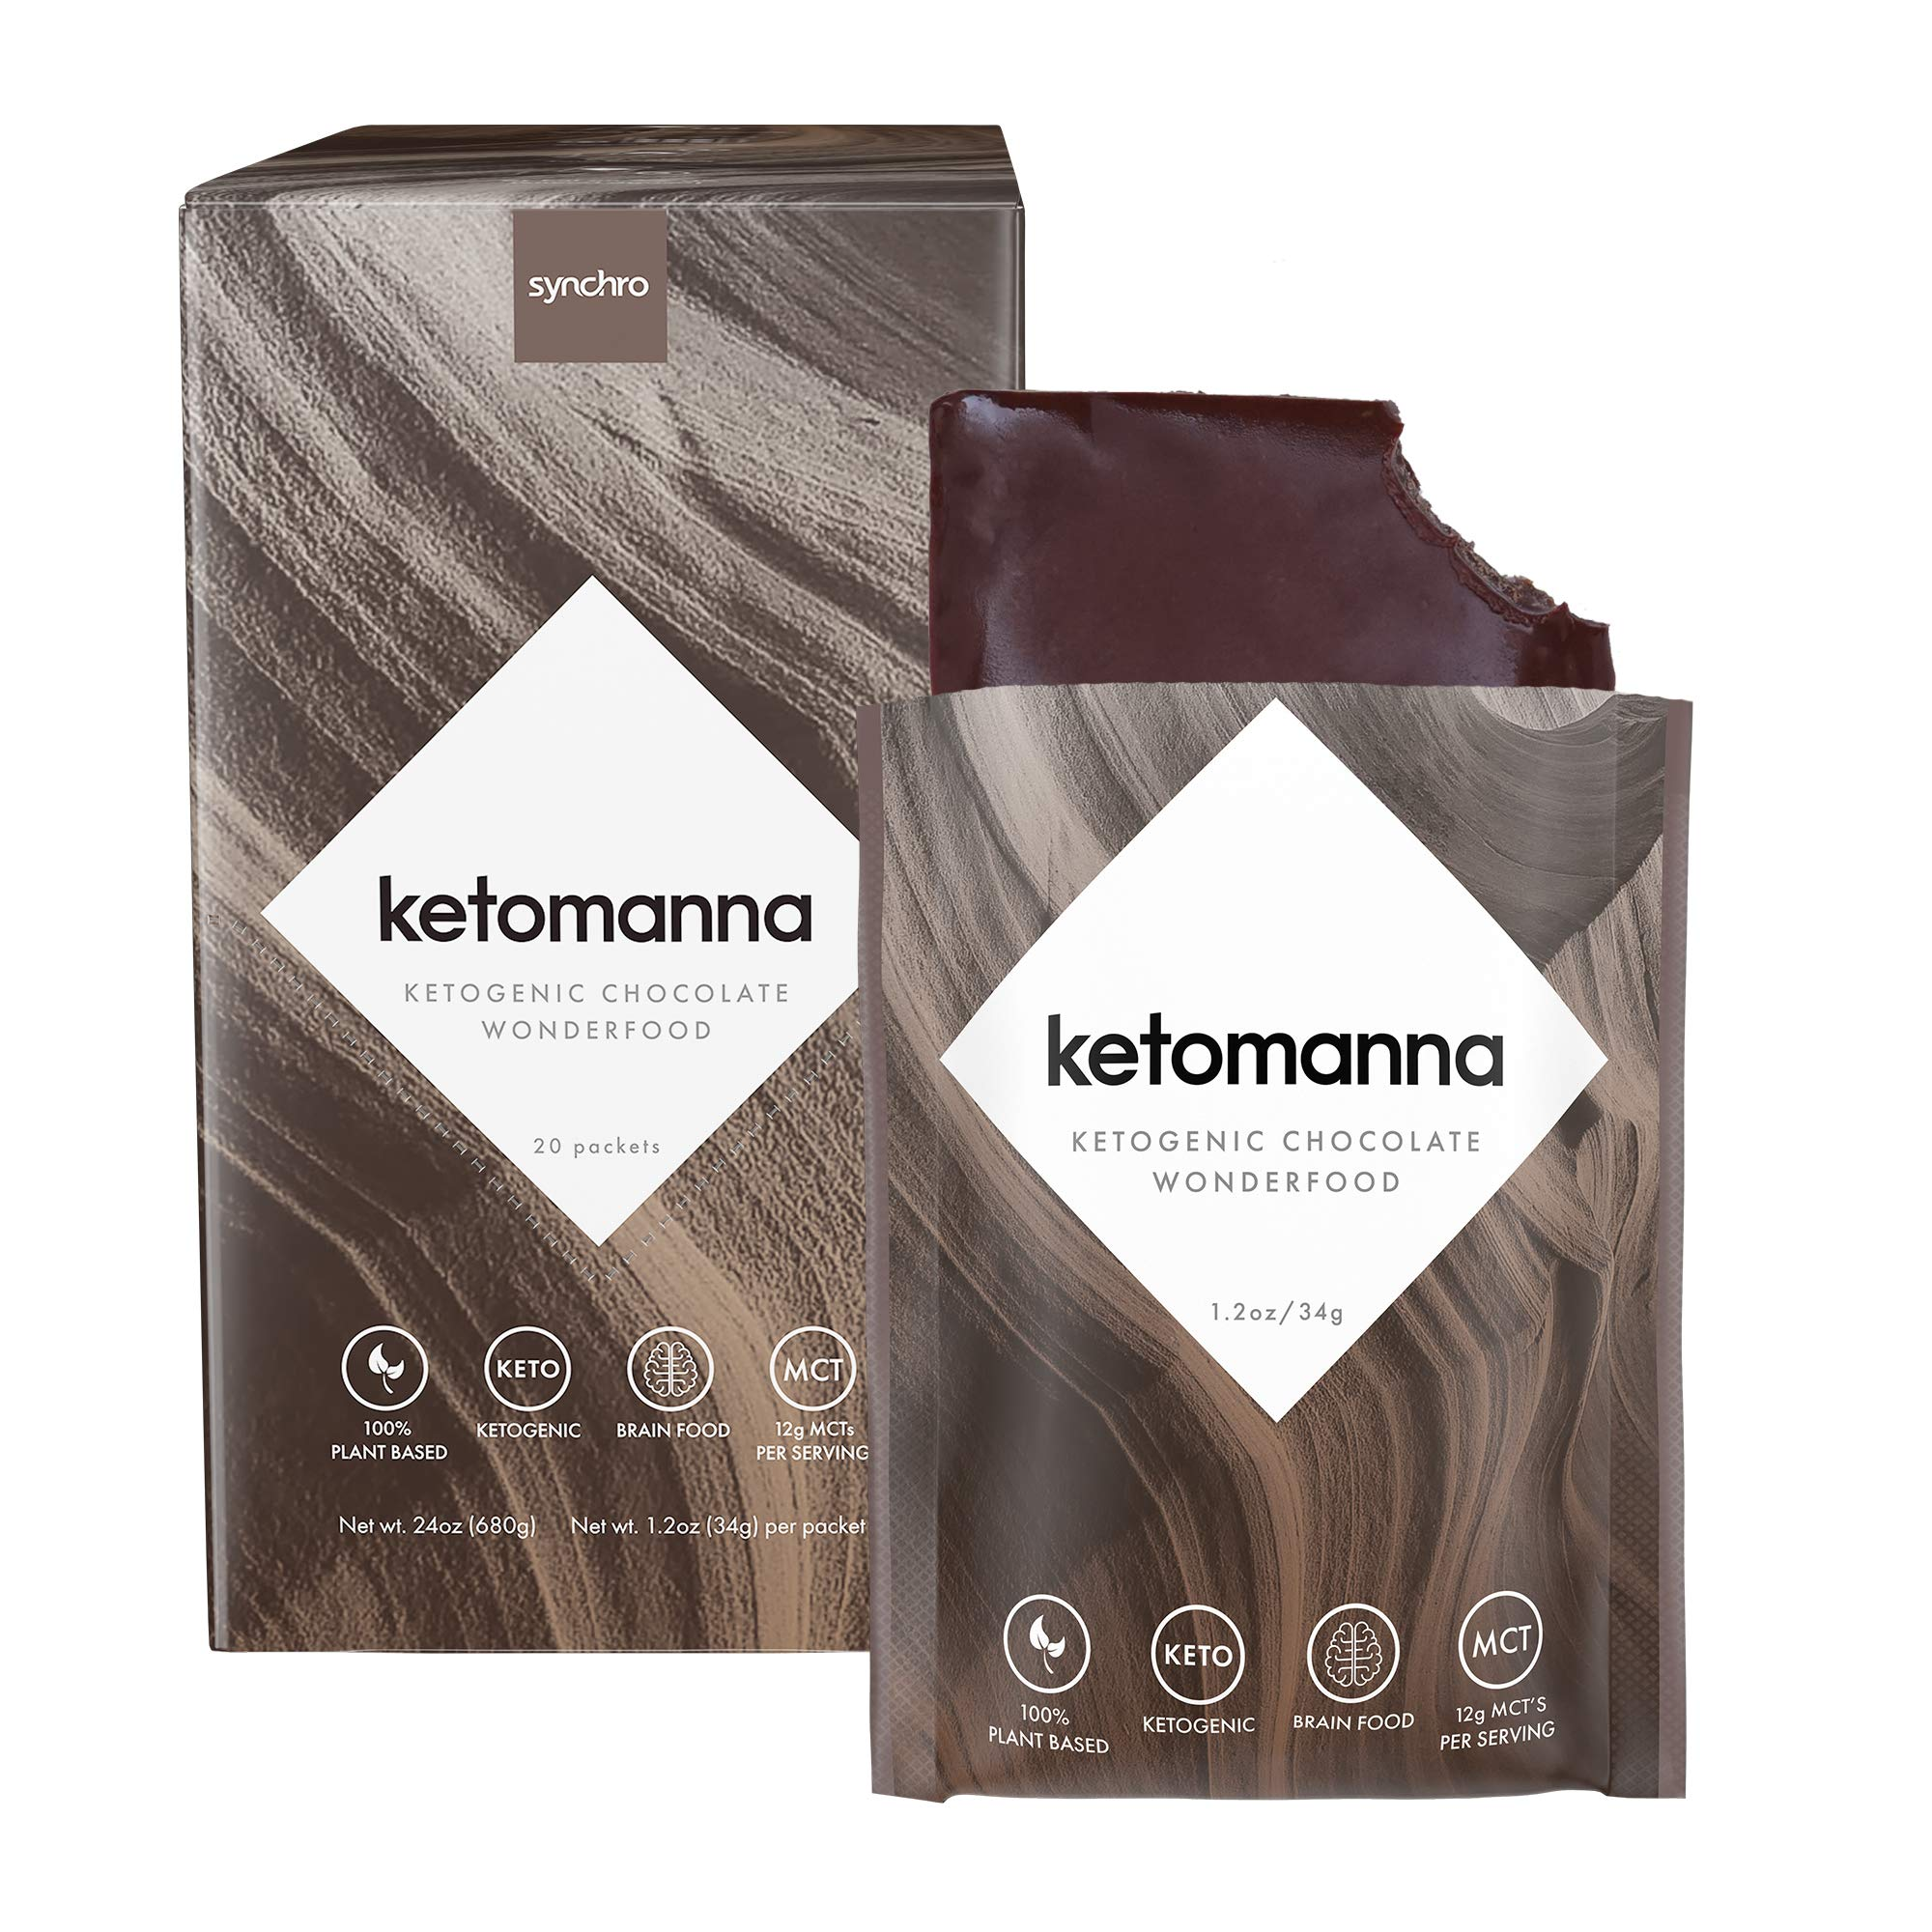 Synchro Ketomanna - Ketogenic Chocolate 12g MCTs - Low Carb + Keto Dessert Snack Perfected (Box of 20 Packets) by Synchro